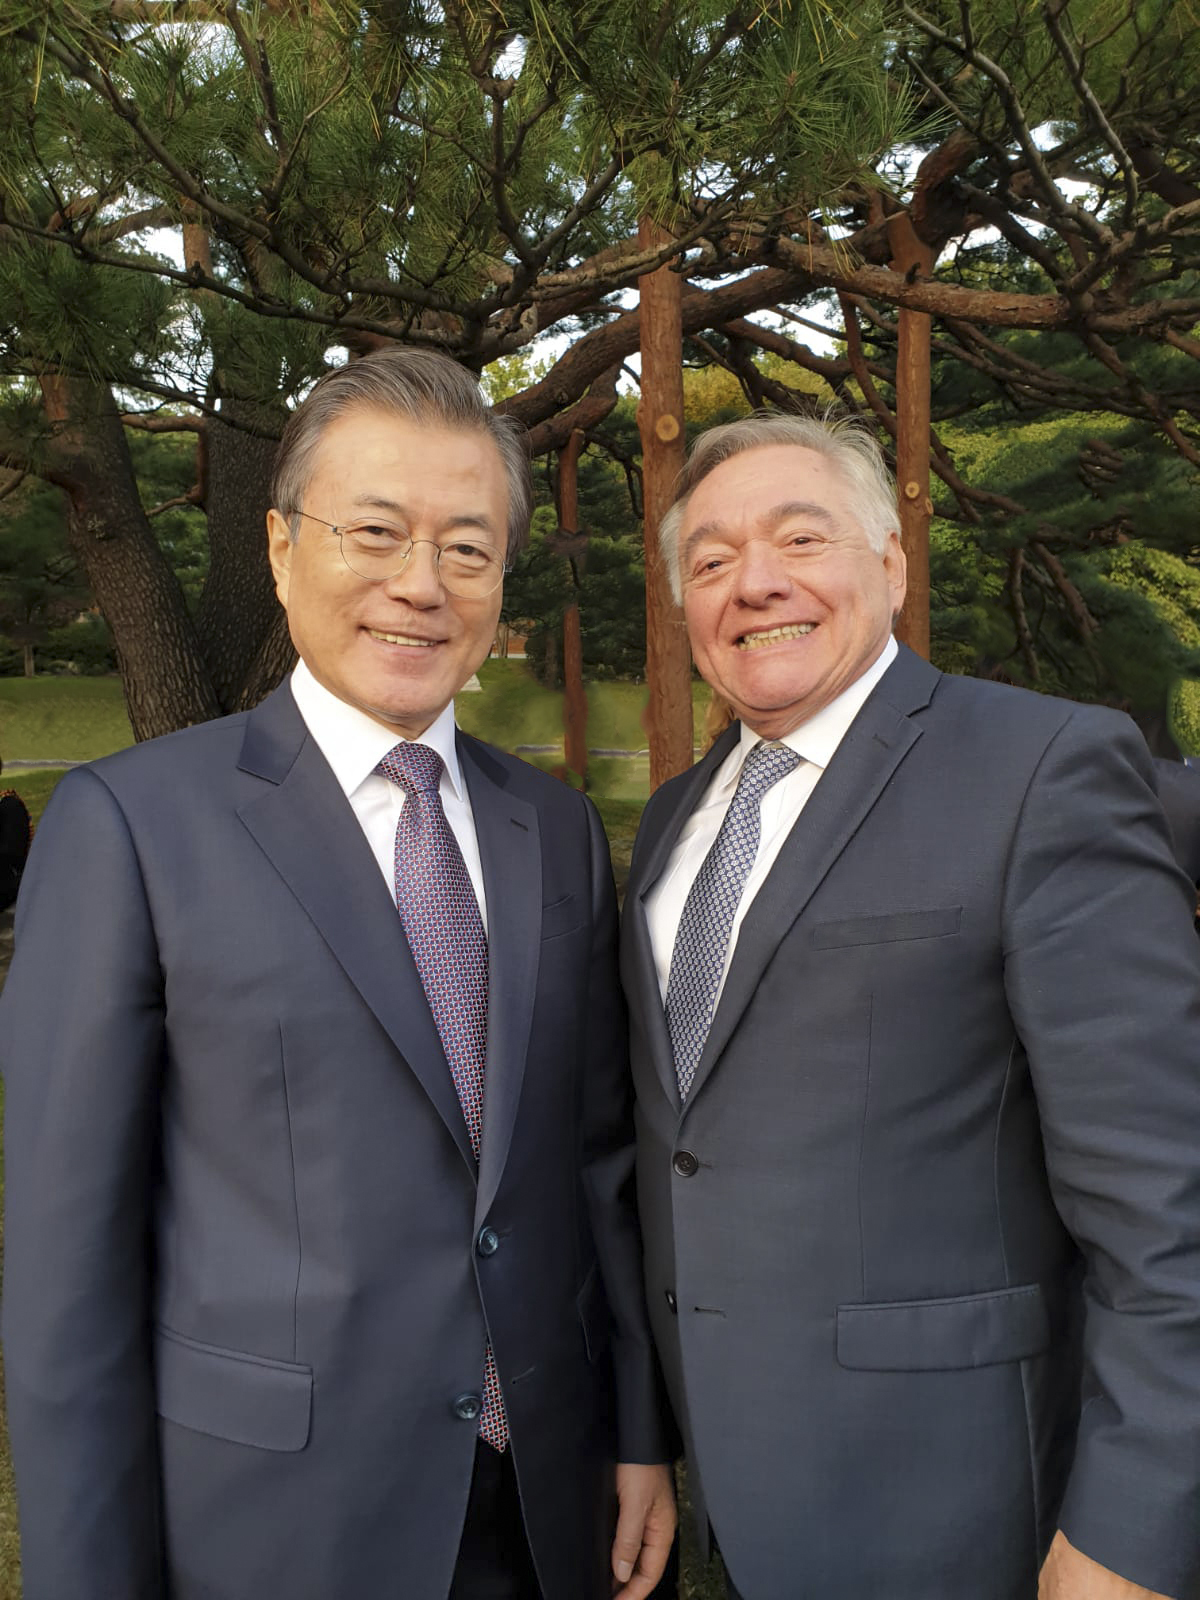 Peruvian ambassador Daul Matute Mejia(right)with President Moon Jae-in at a reception in the gardens of the Blue House for diplomatic corps in 2019.(Peruvian Embassy in Seoul)